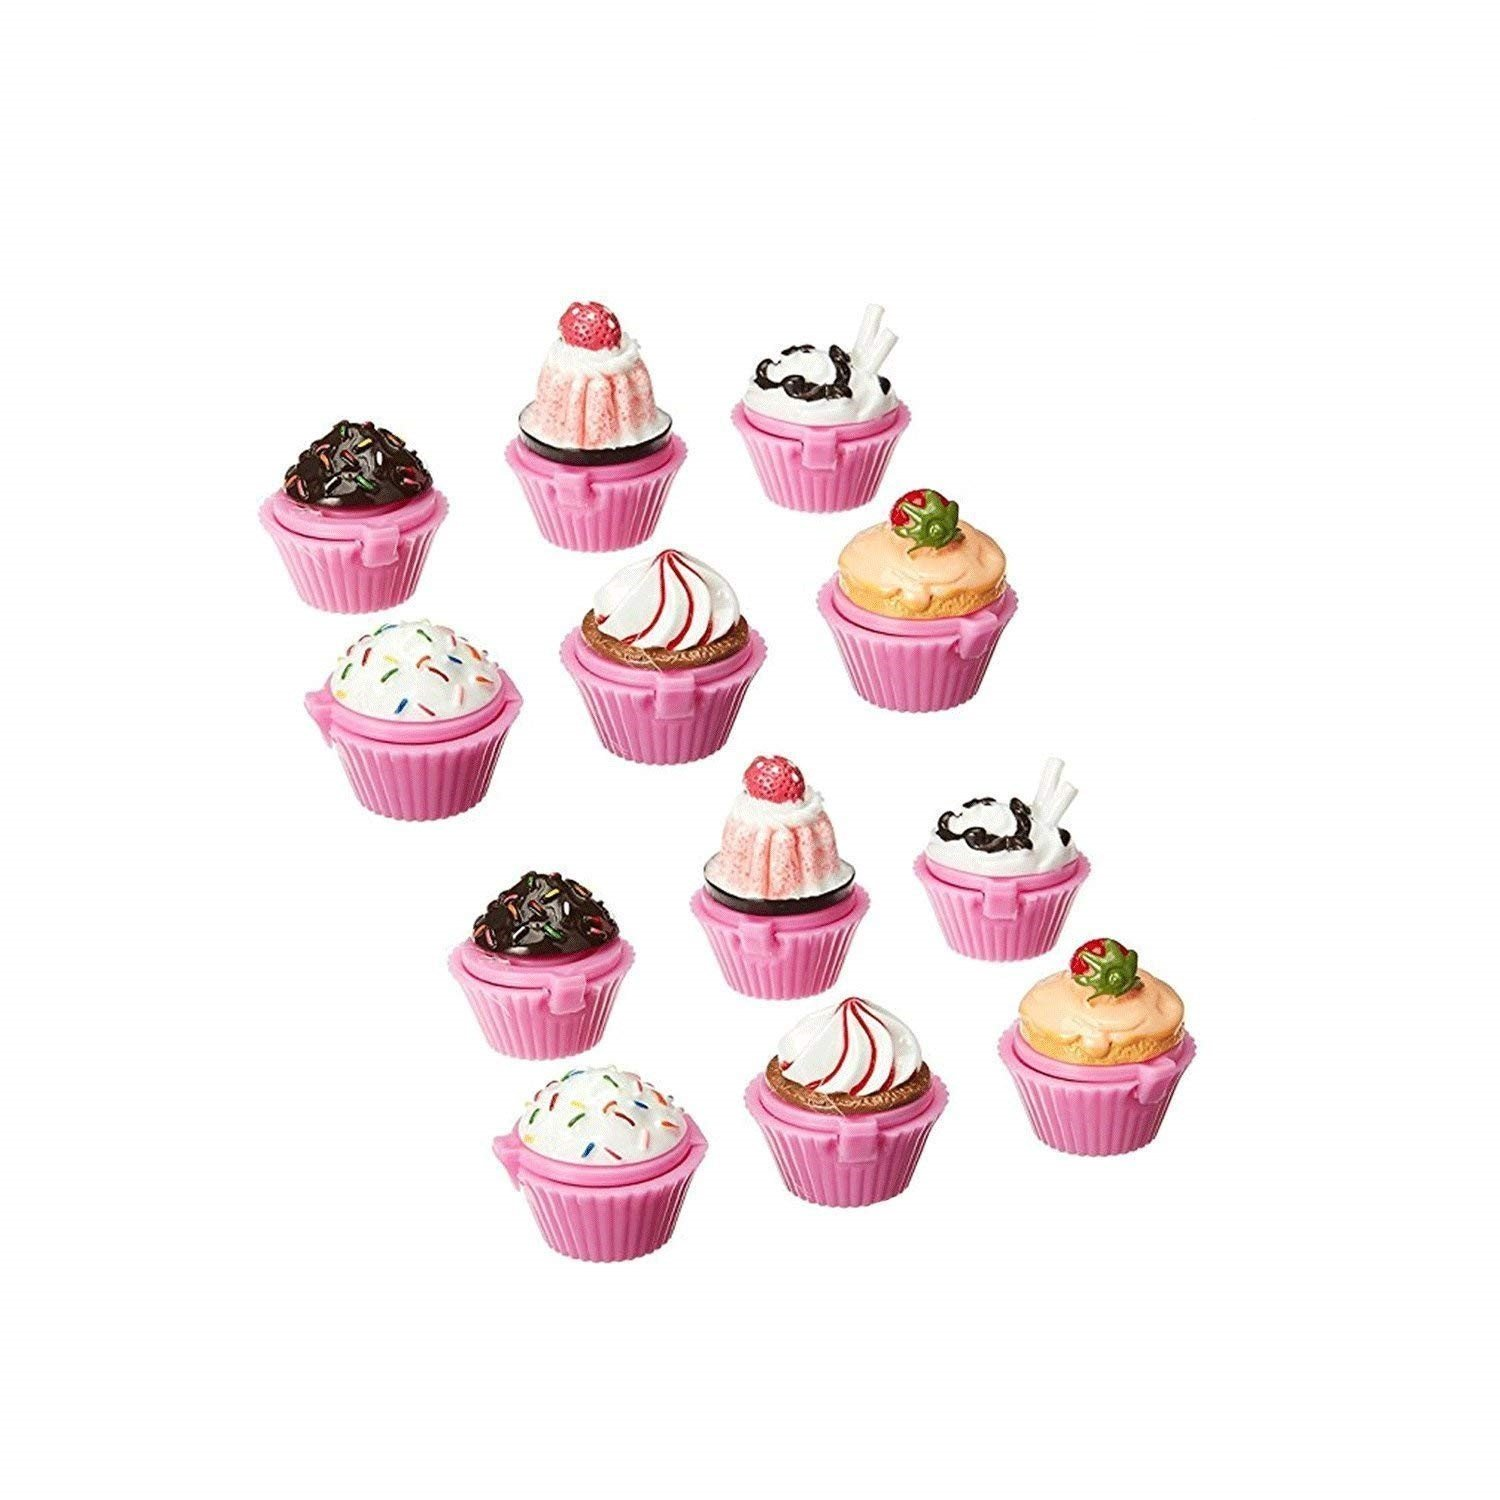 Adorox 12pc Scented Novelty Cupcake Lip Gloss Lip Balm Makeup Girls Birthday Party Favors